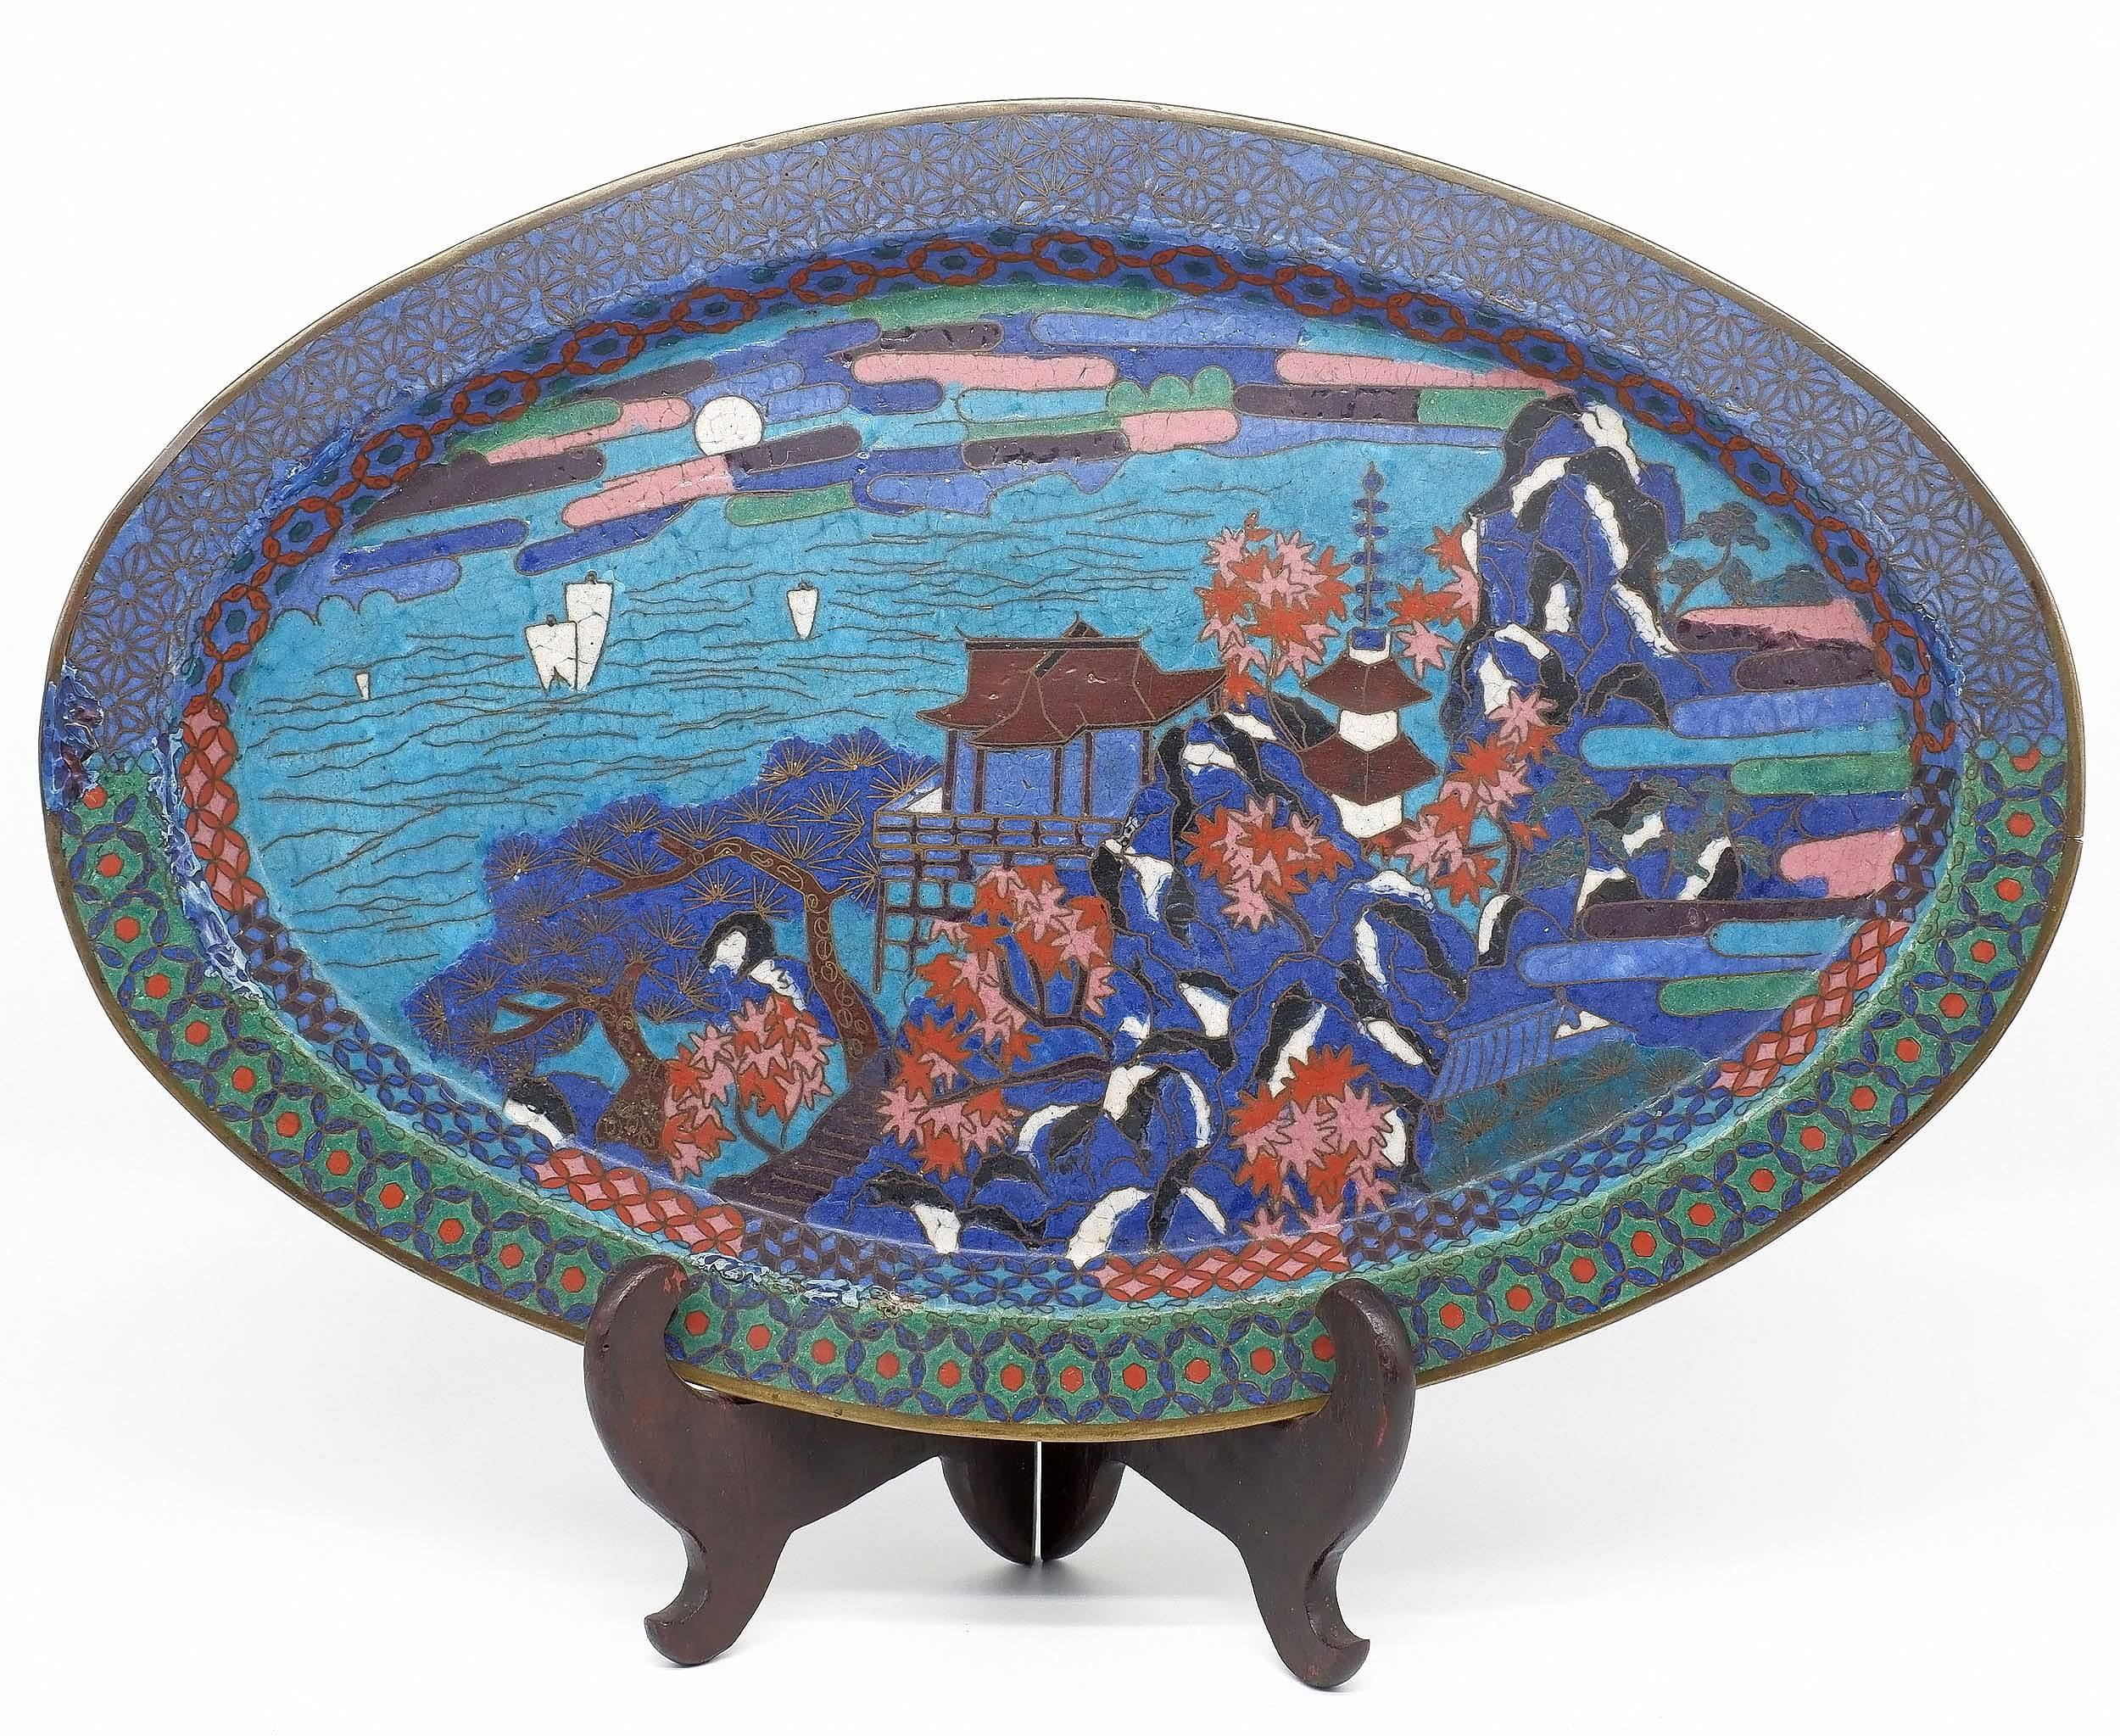 'Japanese Early Meiji Period Cloisonne Tray Circa 1880'